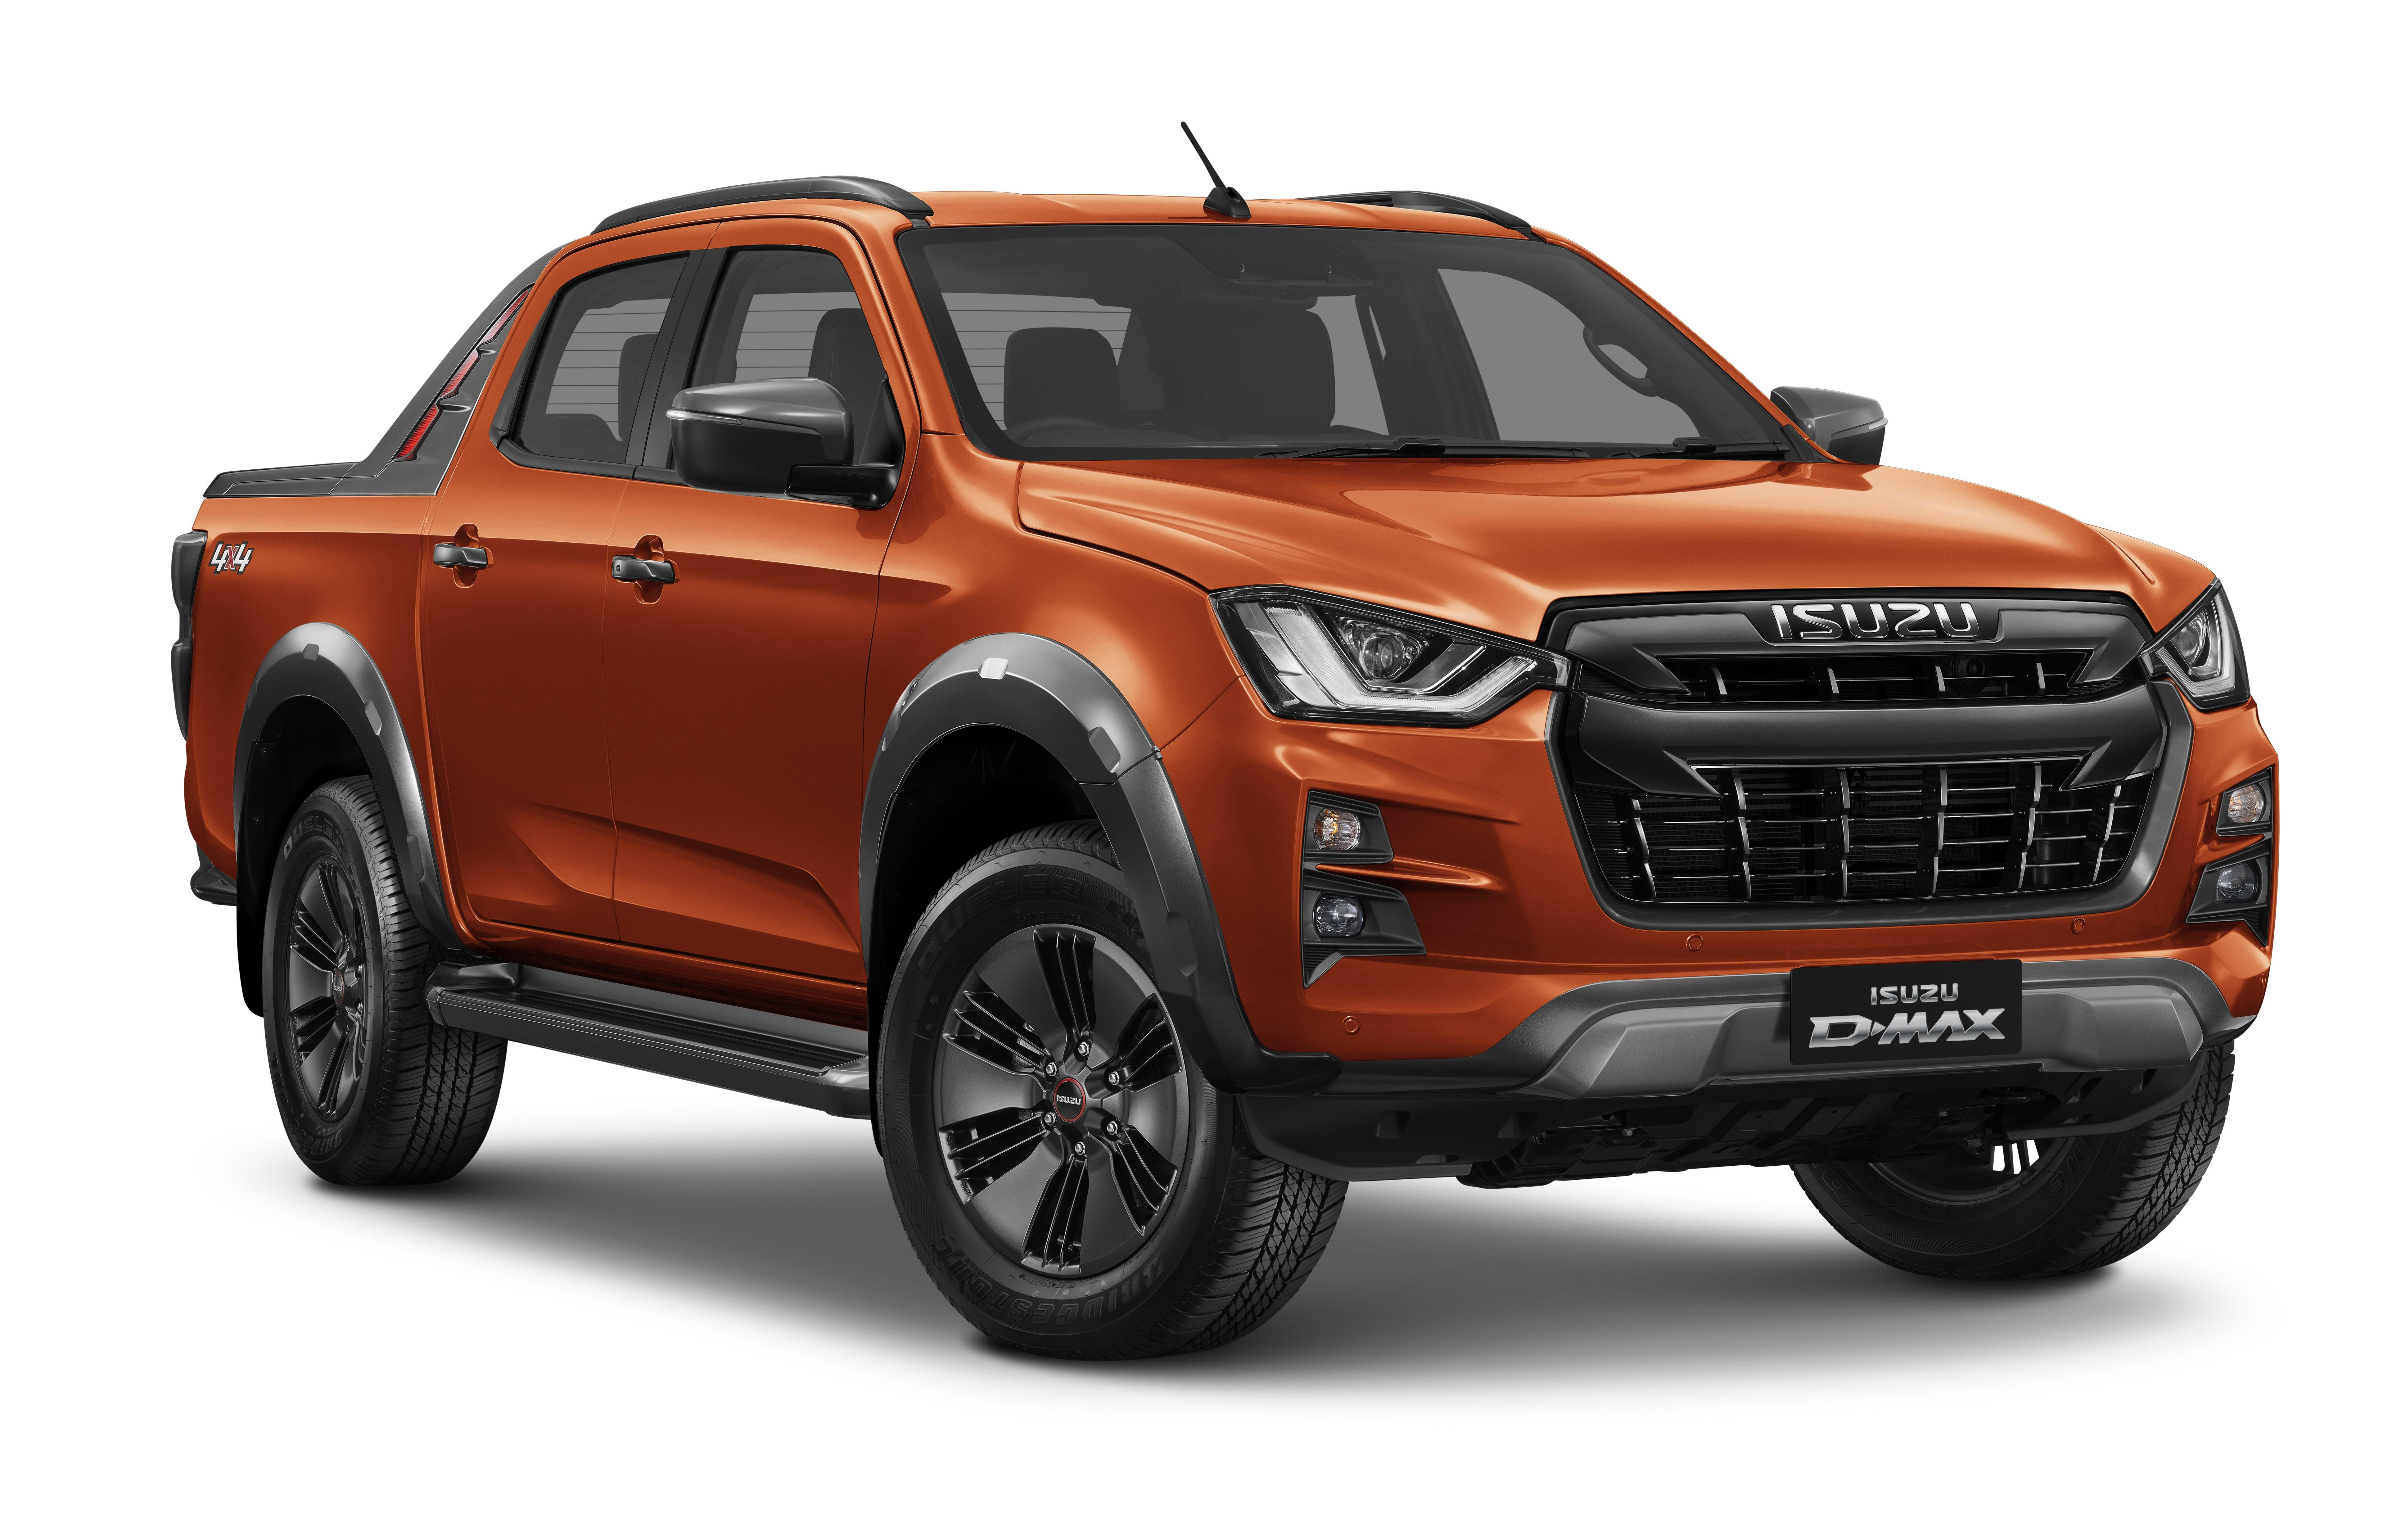 New Isuzu D-Max, Ford Ranger and Toyota HiLux compared